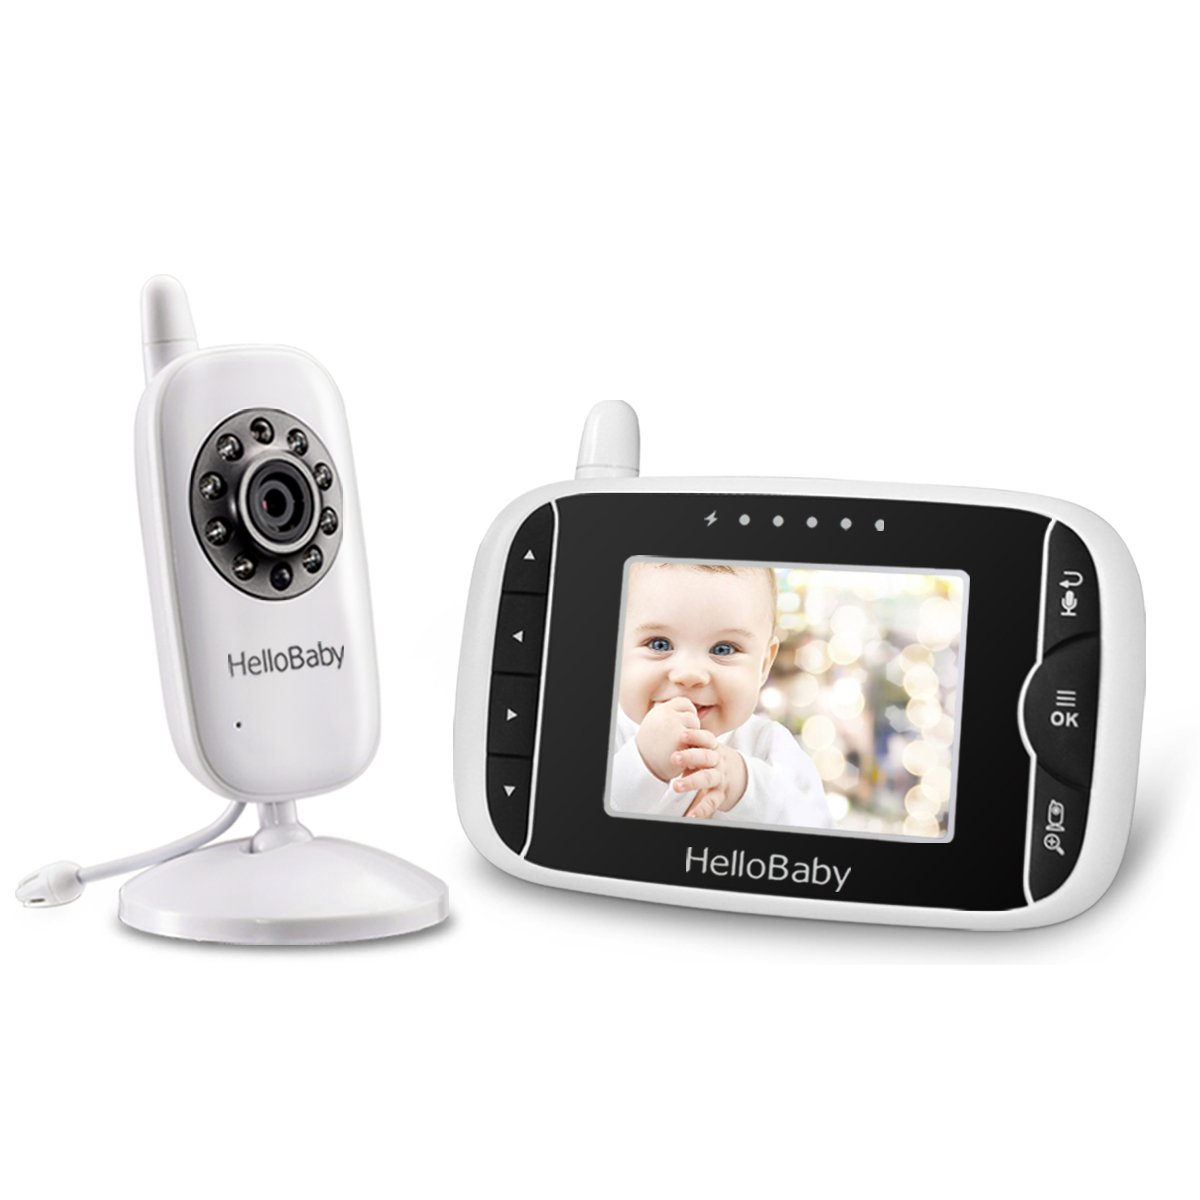 HelloBaby Video Baby Monitor 3.2'' LCD Display Screen with Camera,  Infrared Night Vision, Two Way Talk, VOX Mode, Built-in Lullabies, Long Range and Temperature Monitoring  Infrared Night Vision